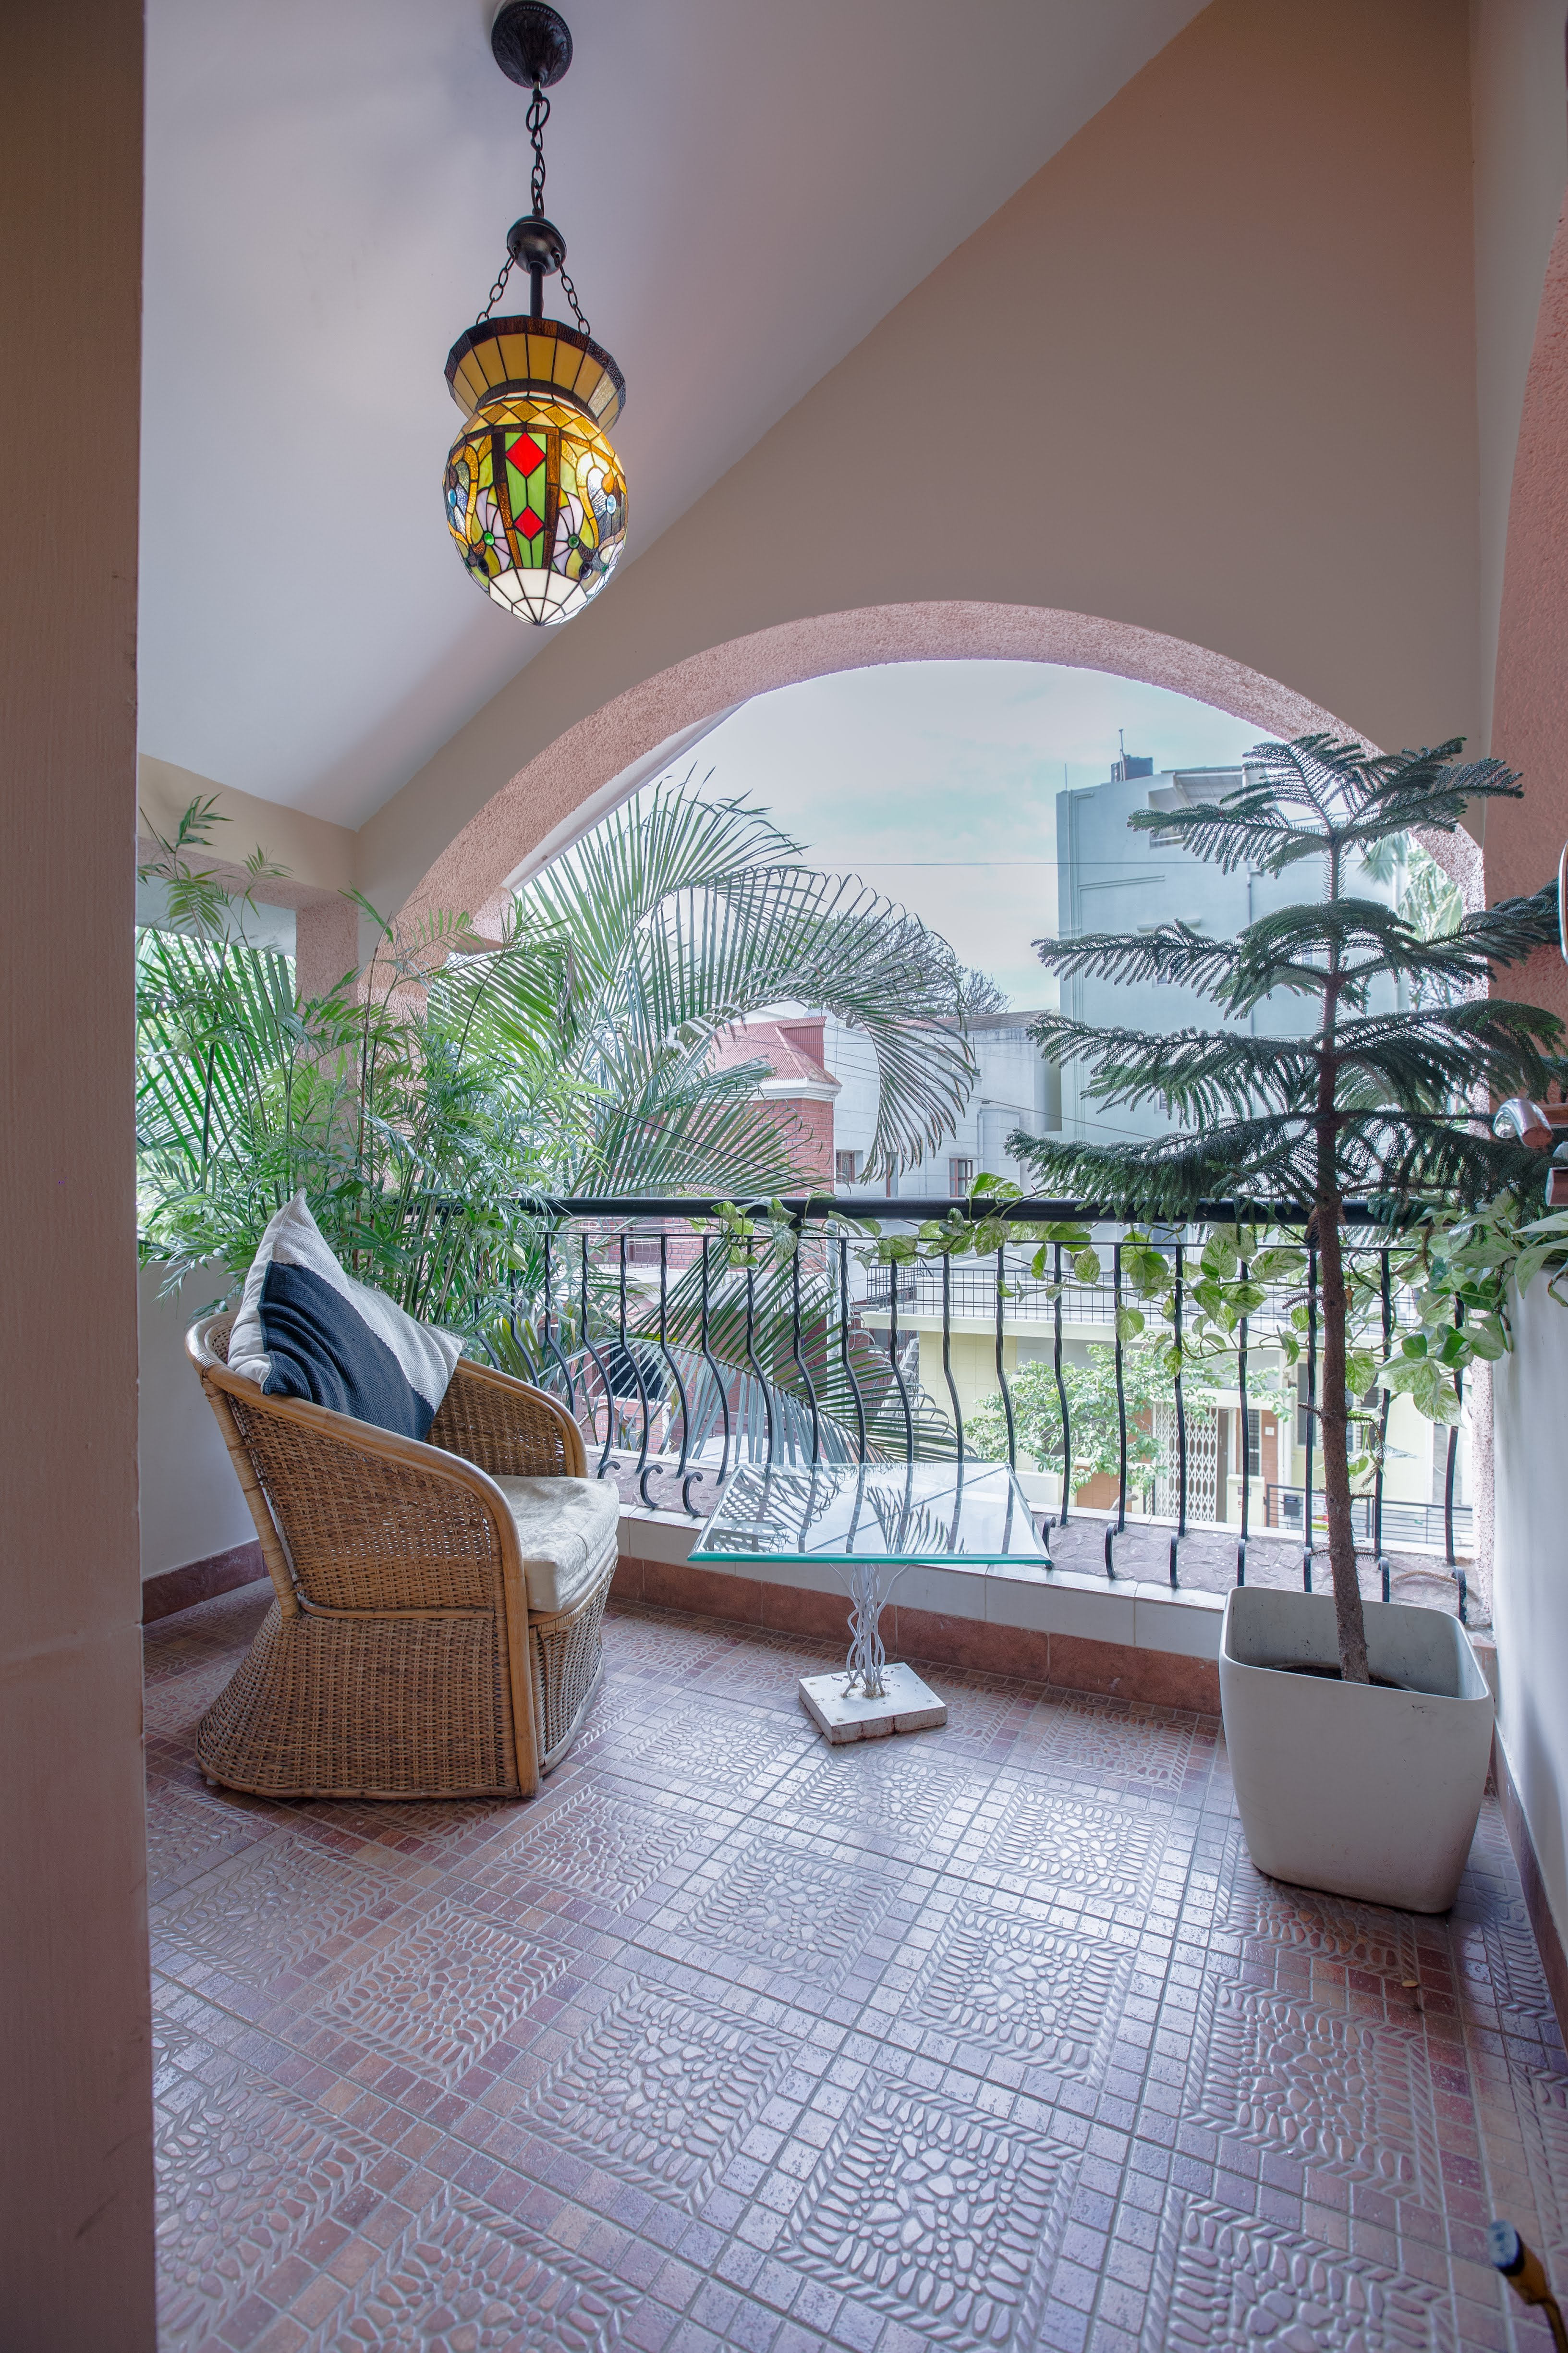 Your private balcony in Casablanca